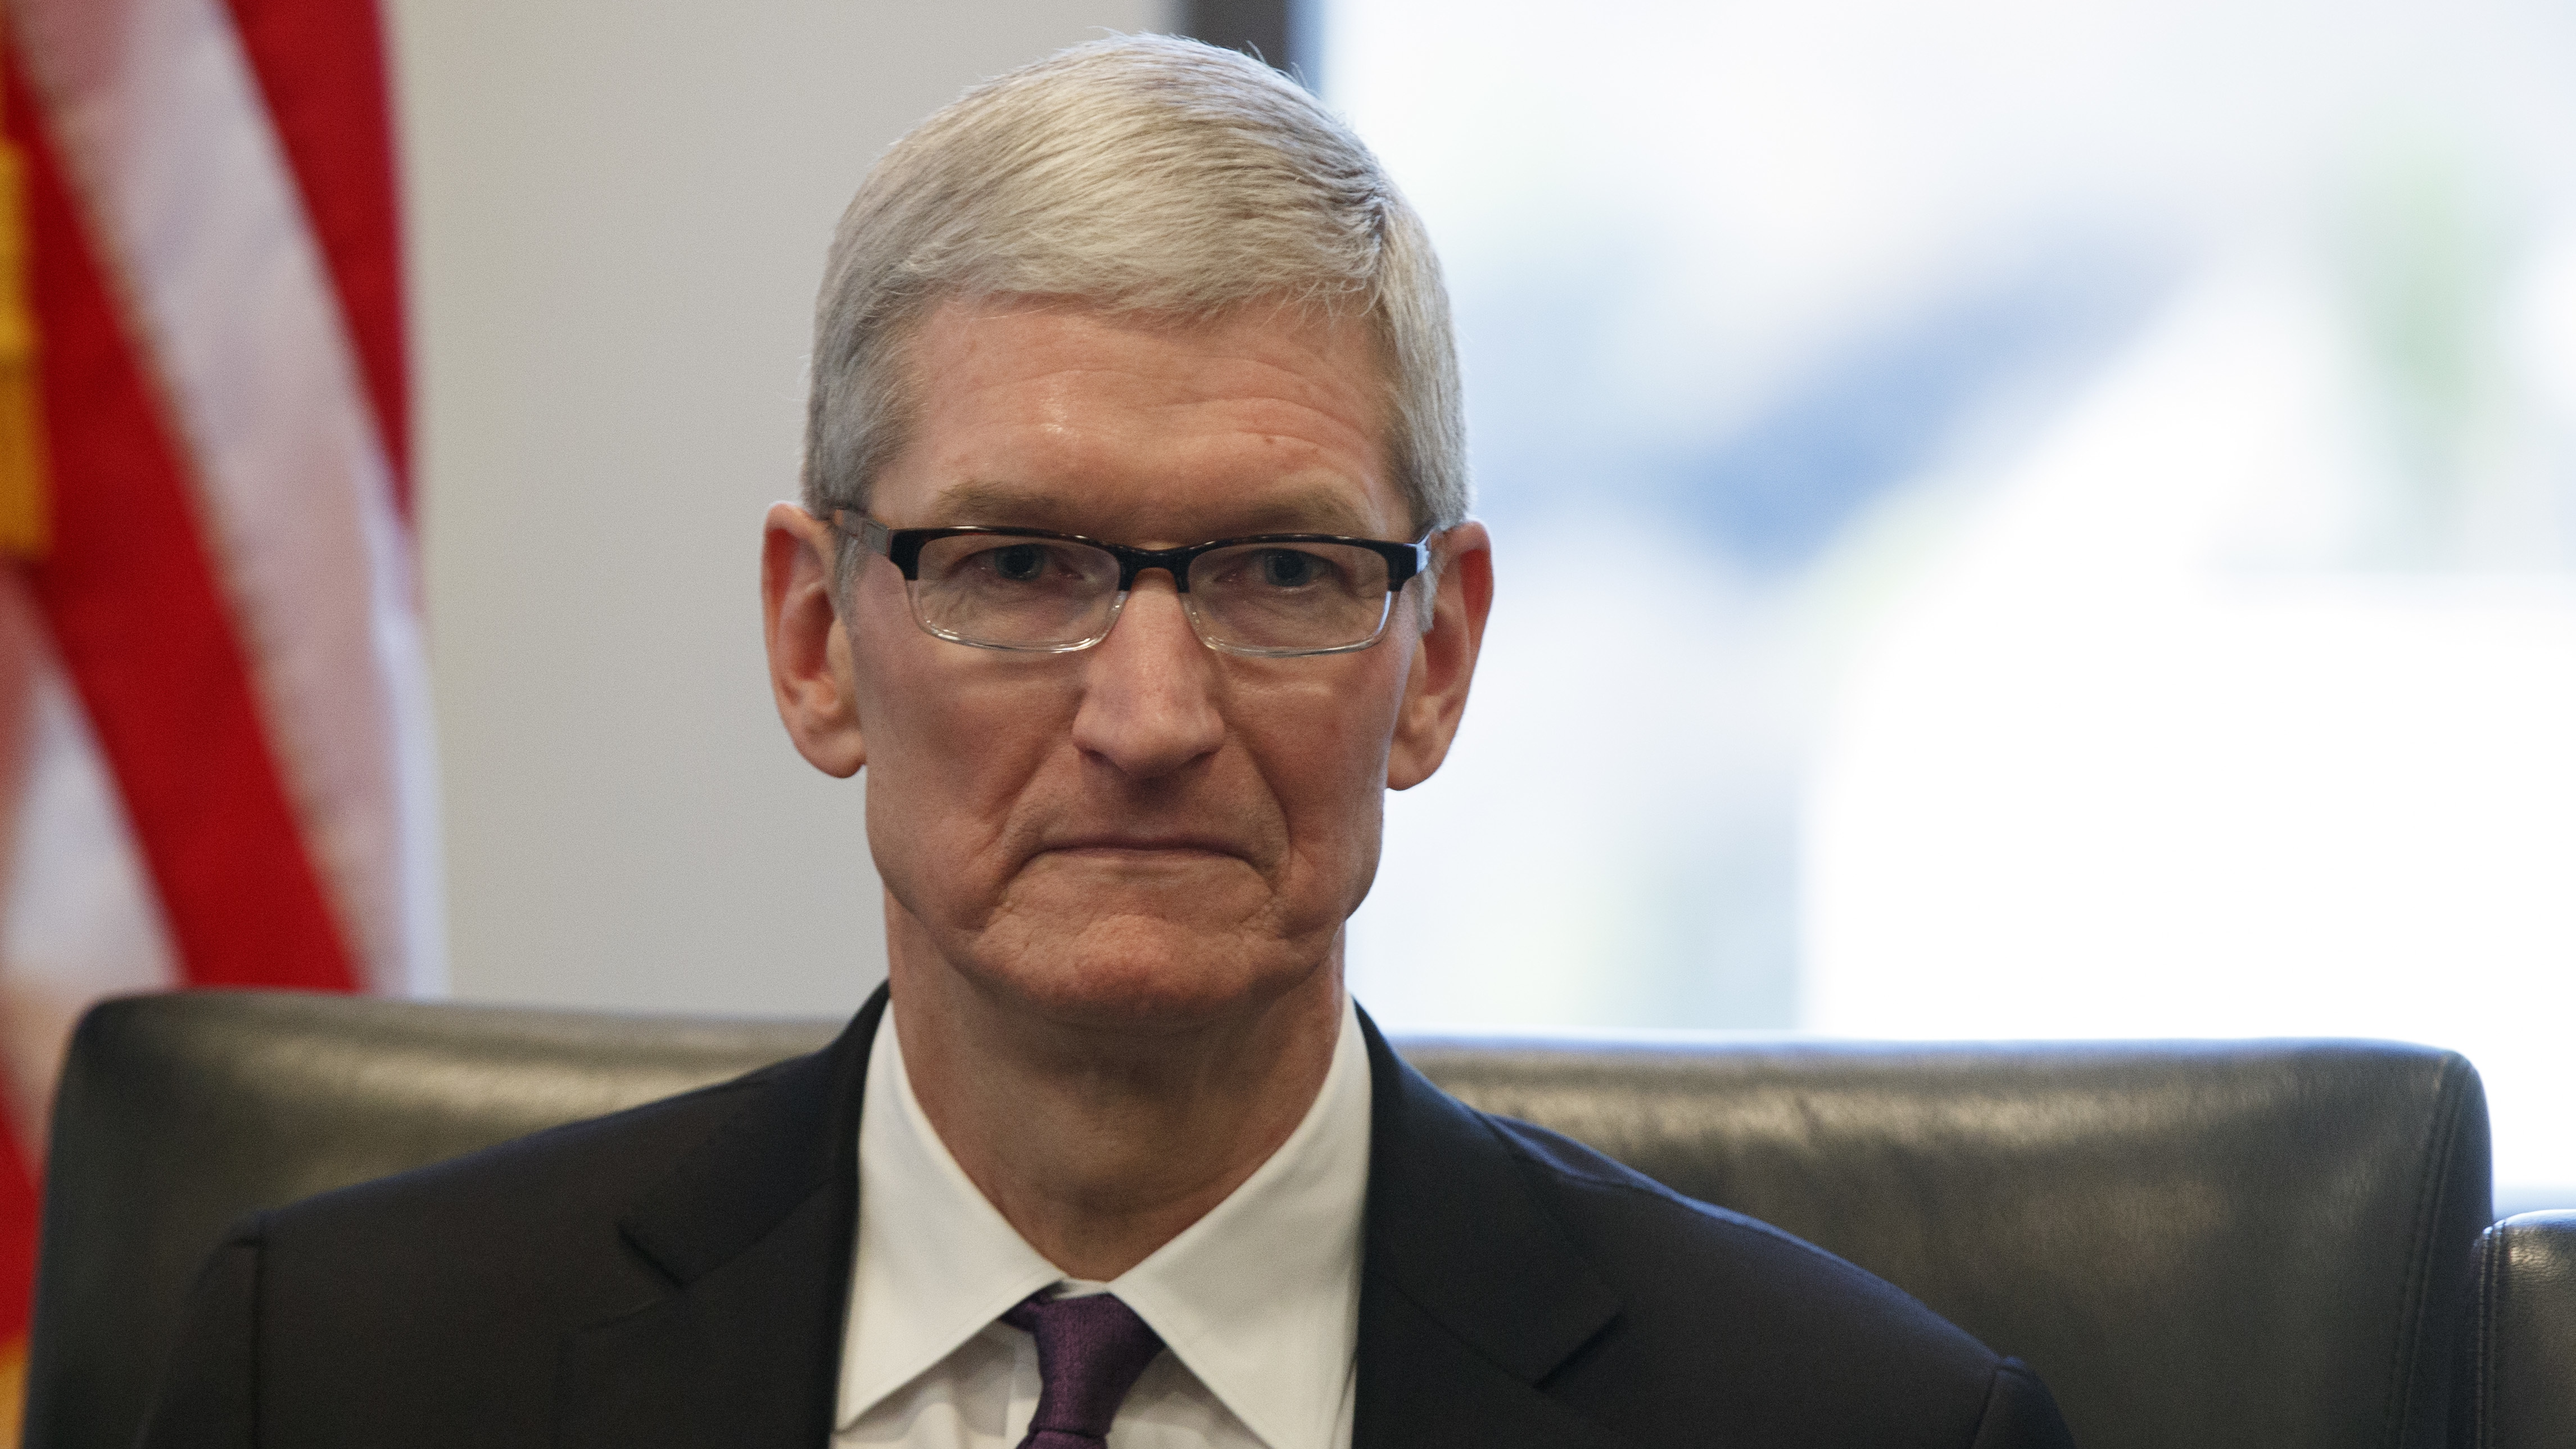 Apple CEO Tim Cook listens as President-elect Donald Trump speaks during a meeting with technology industry leaders at Trump Tower in New York, Wednesday, Dec. 14, 2016. (AP Photo/Evan Vucci)